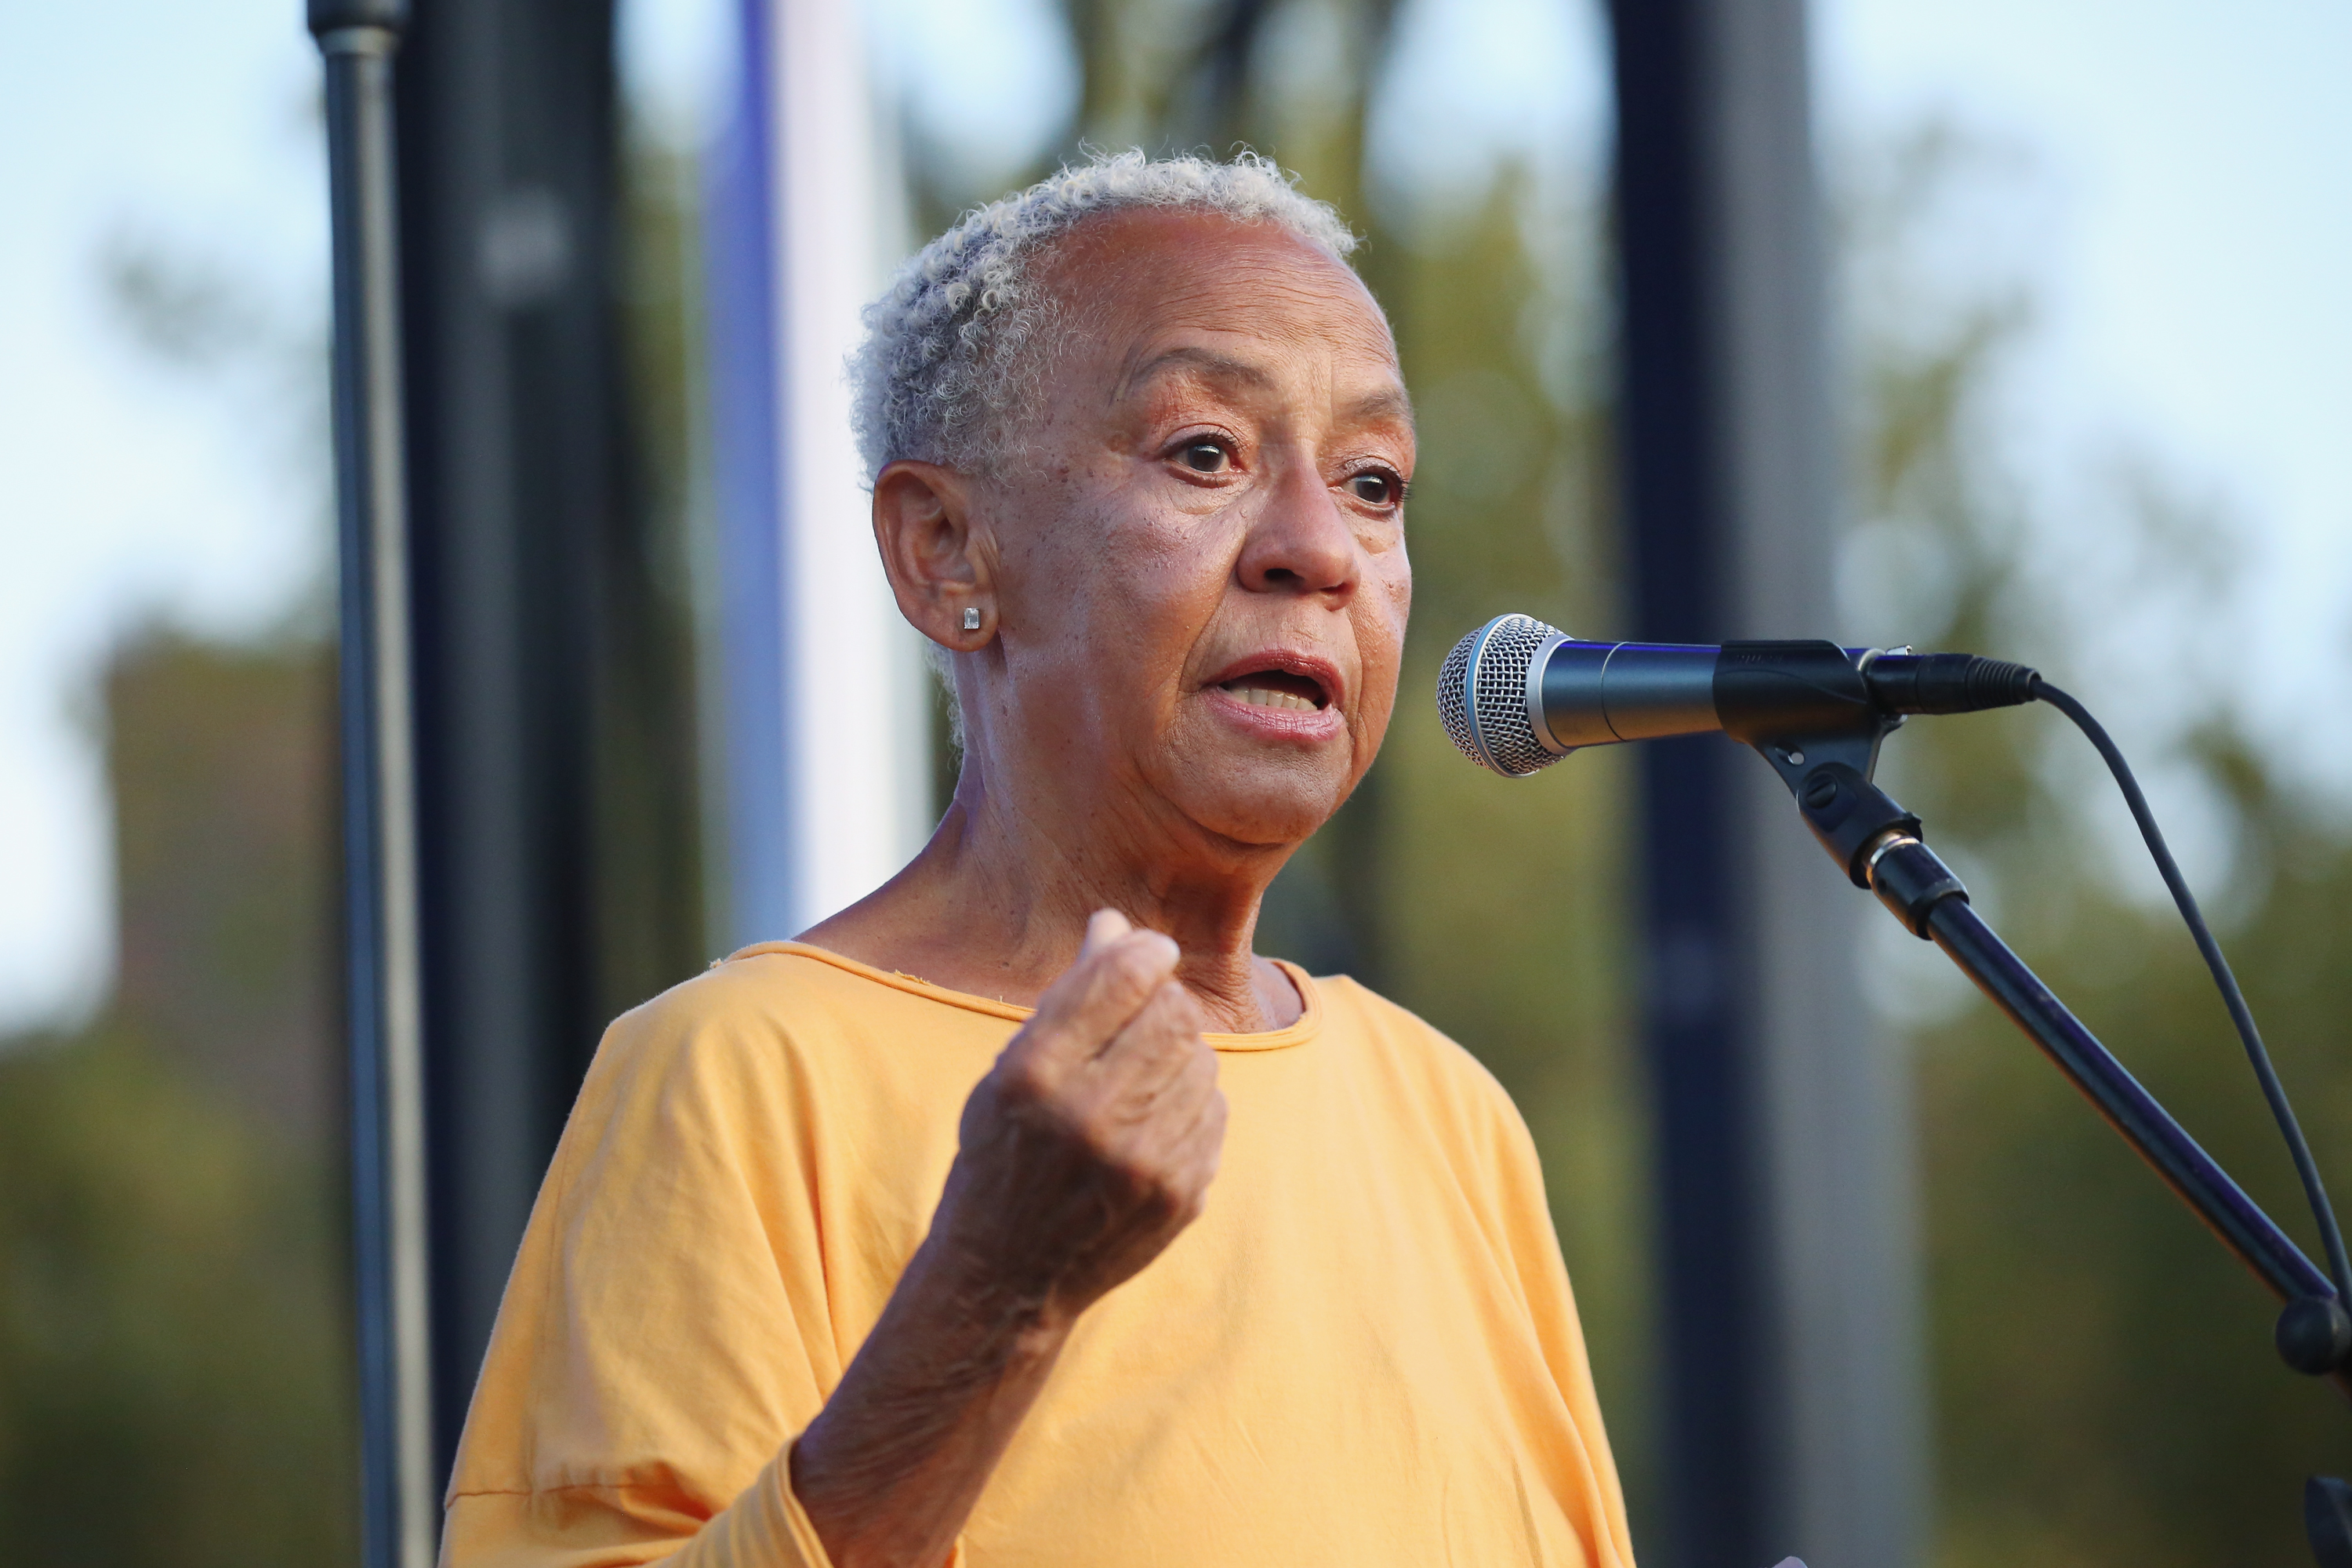 New Poem by Nikki Giovanni Urges Americans To Vote